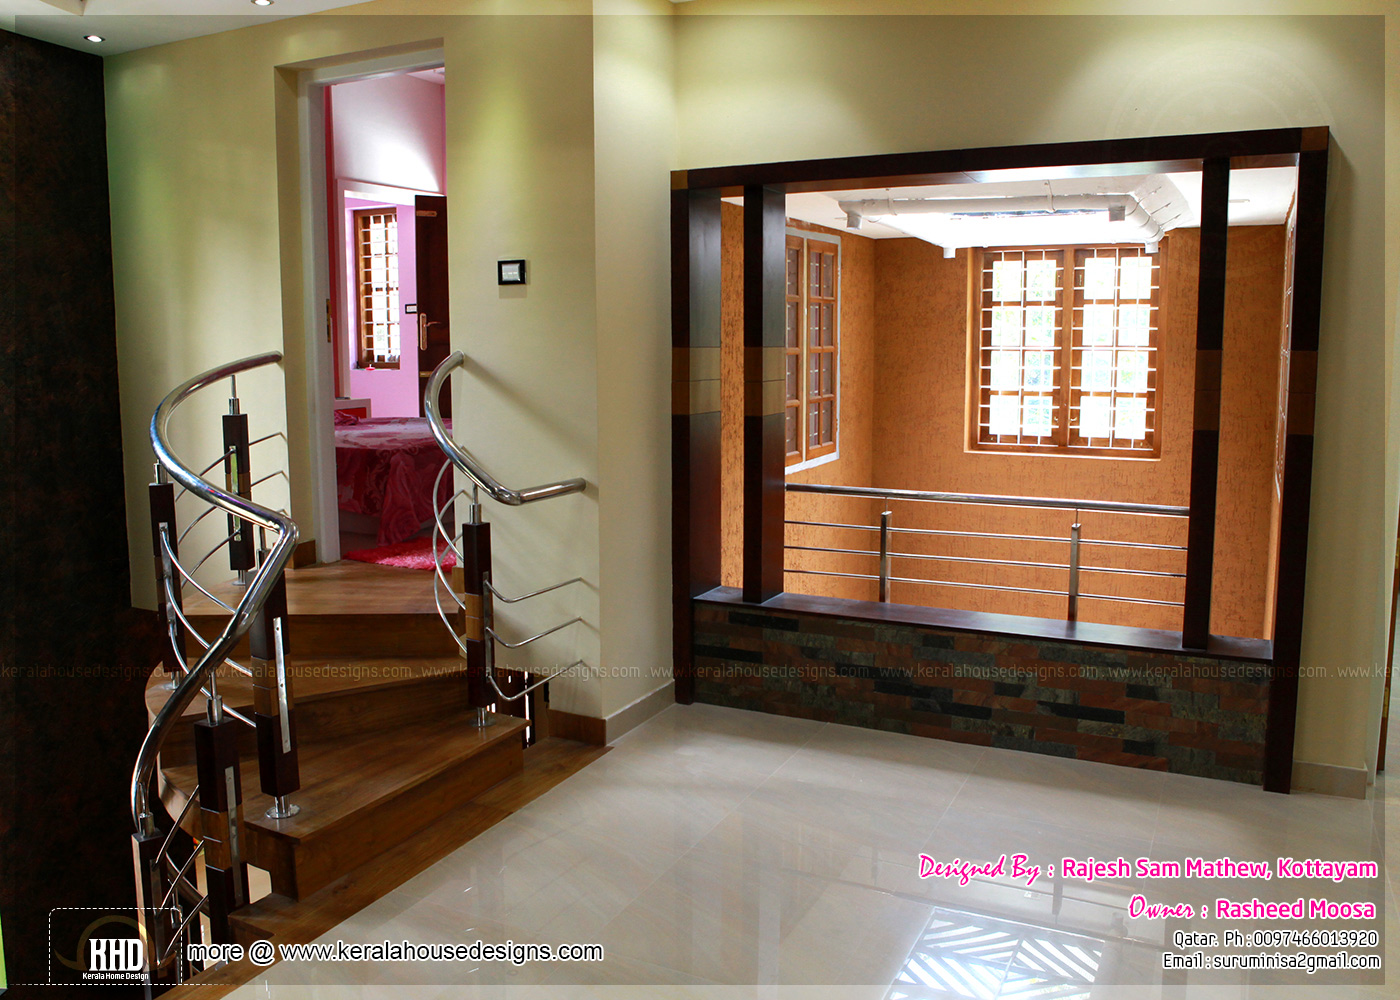 Kerala interior design with photos kerala home design for Small indian house interior design photos